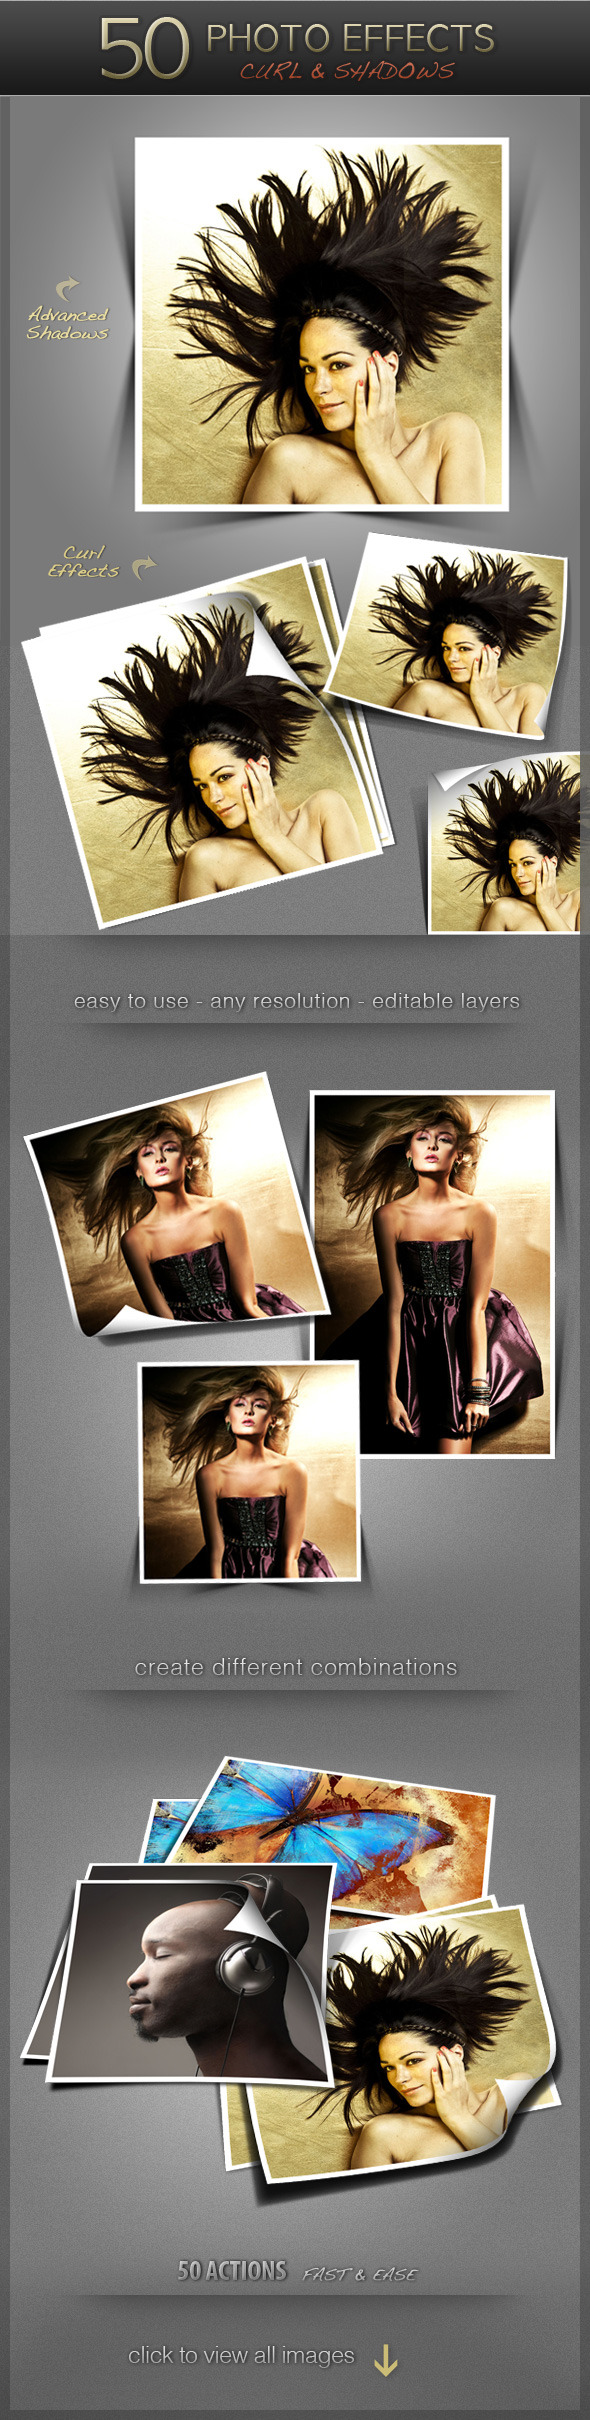 50 Photo Effects - Curl & Shadows - Utilities Actions